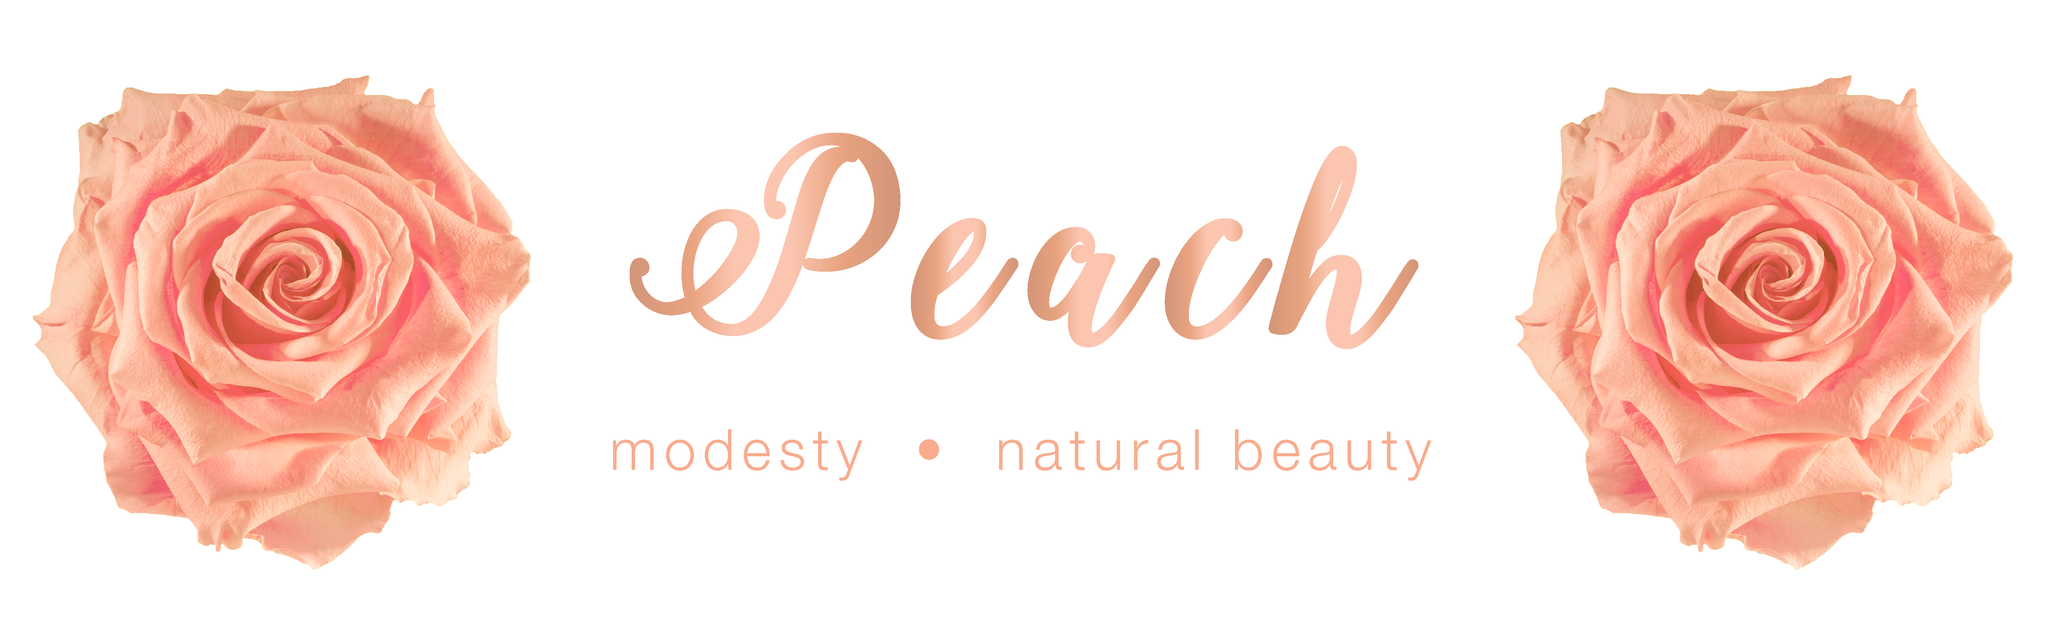 Peach Rose - Colour Meaning | Fiore D'Amore ®